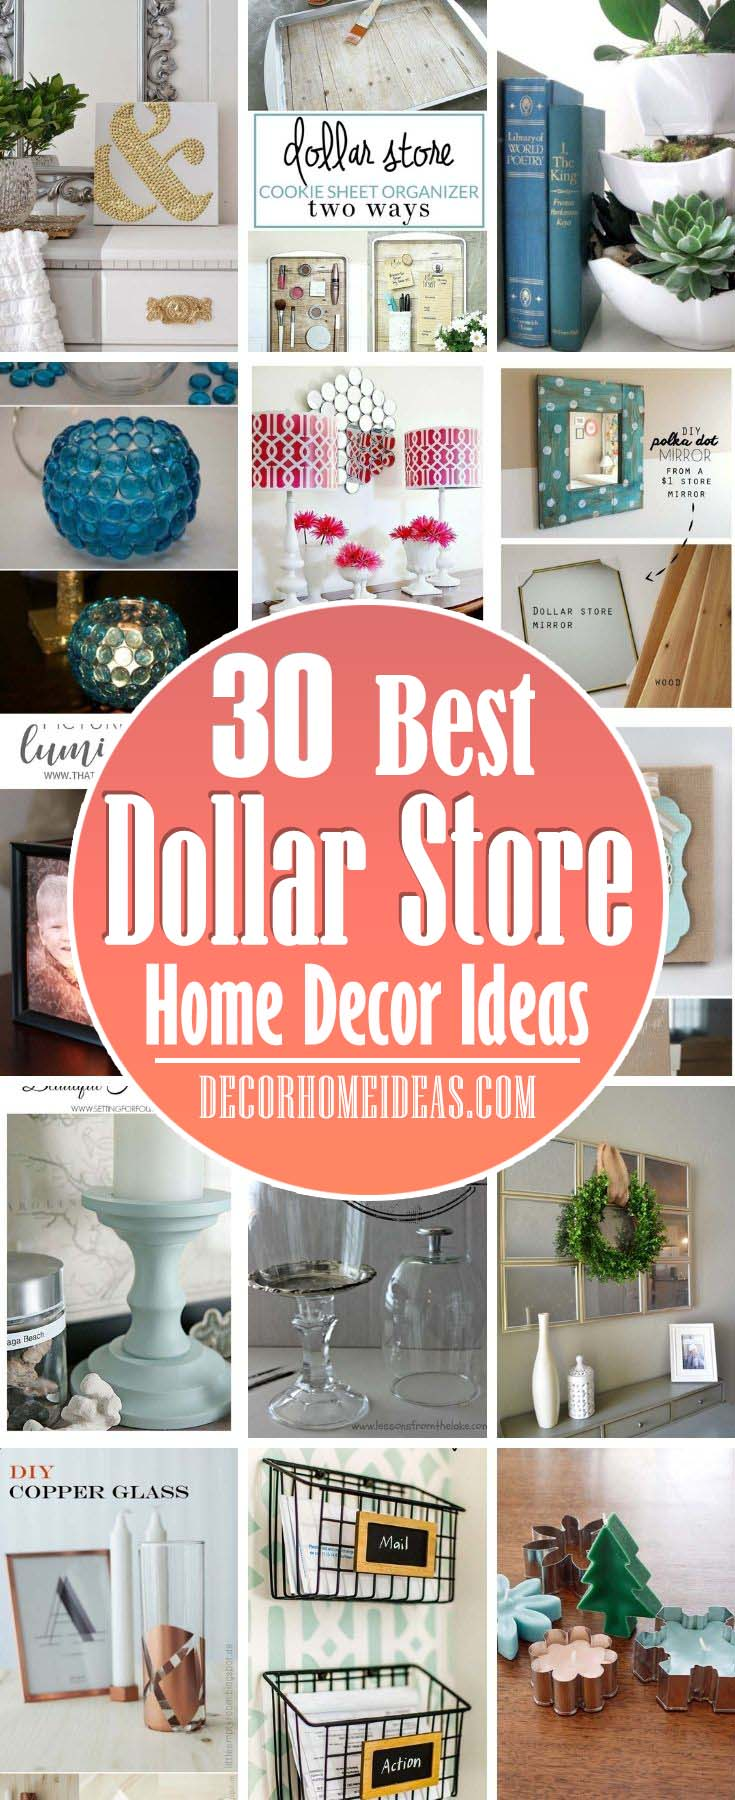 Best Dollar Store Home Decor Ideas. Need to decorate on a budget? These <a href=